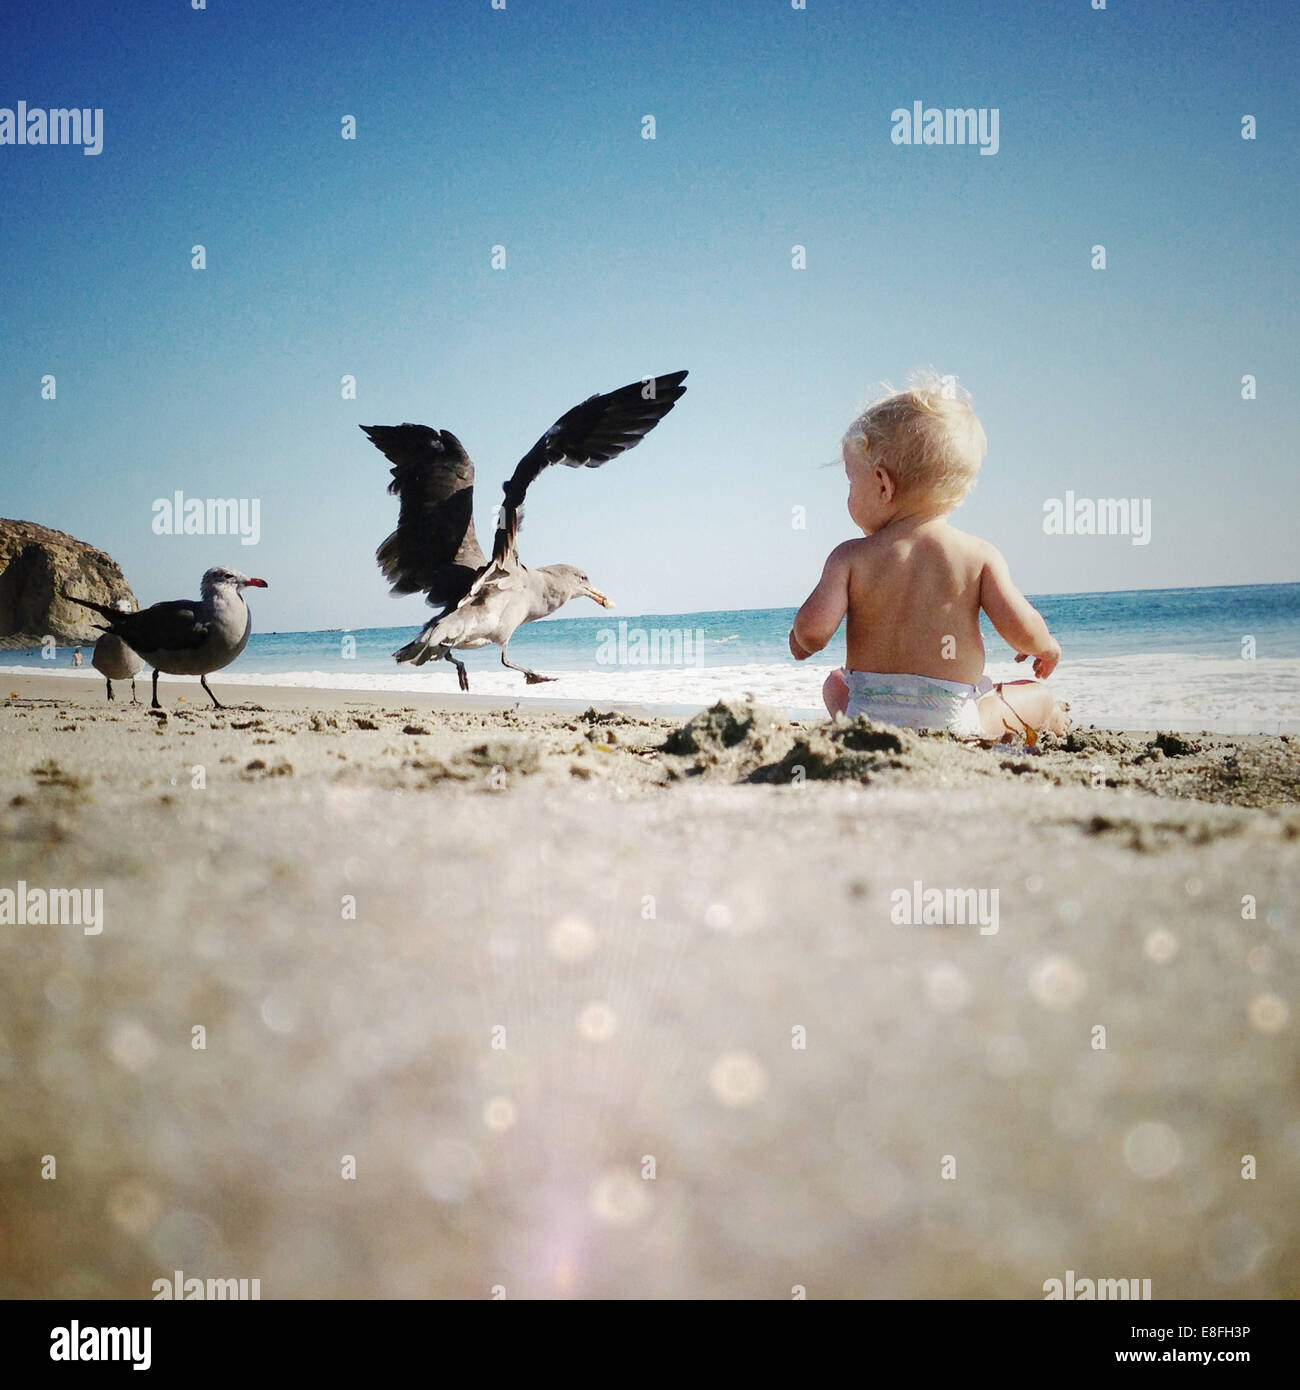 Baby boy sitting on the beach with seagulls, Dana Point, California, America, USA - Stock Image